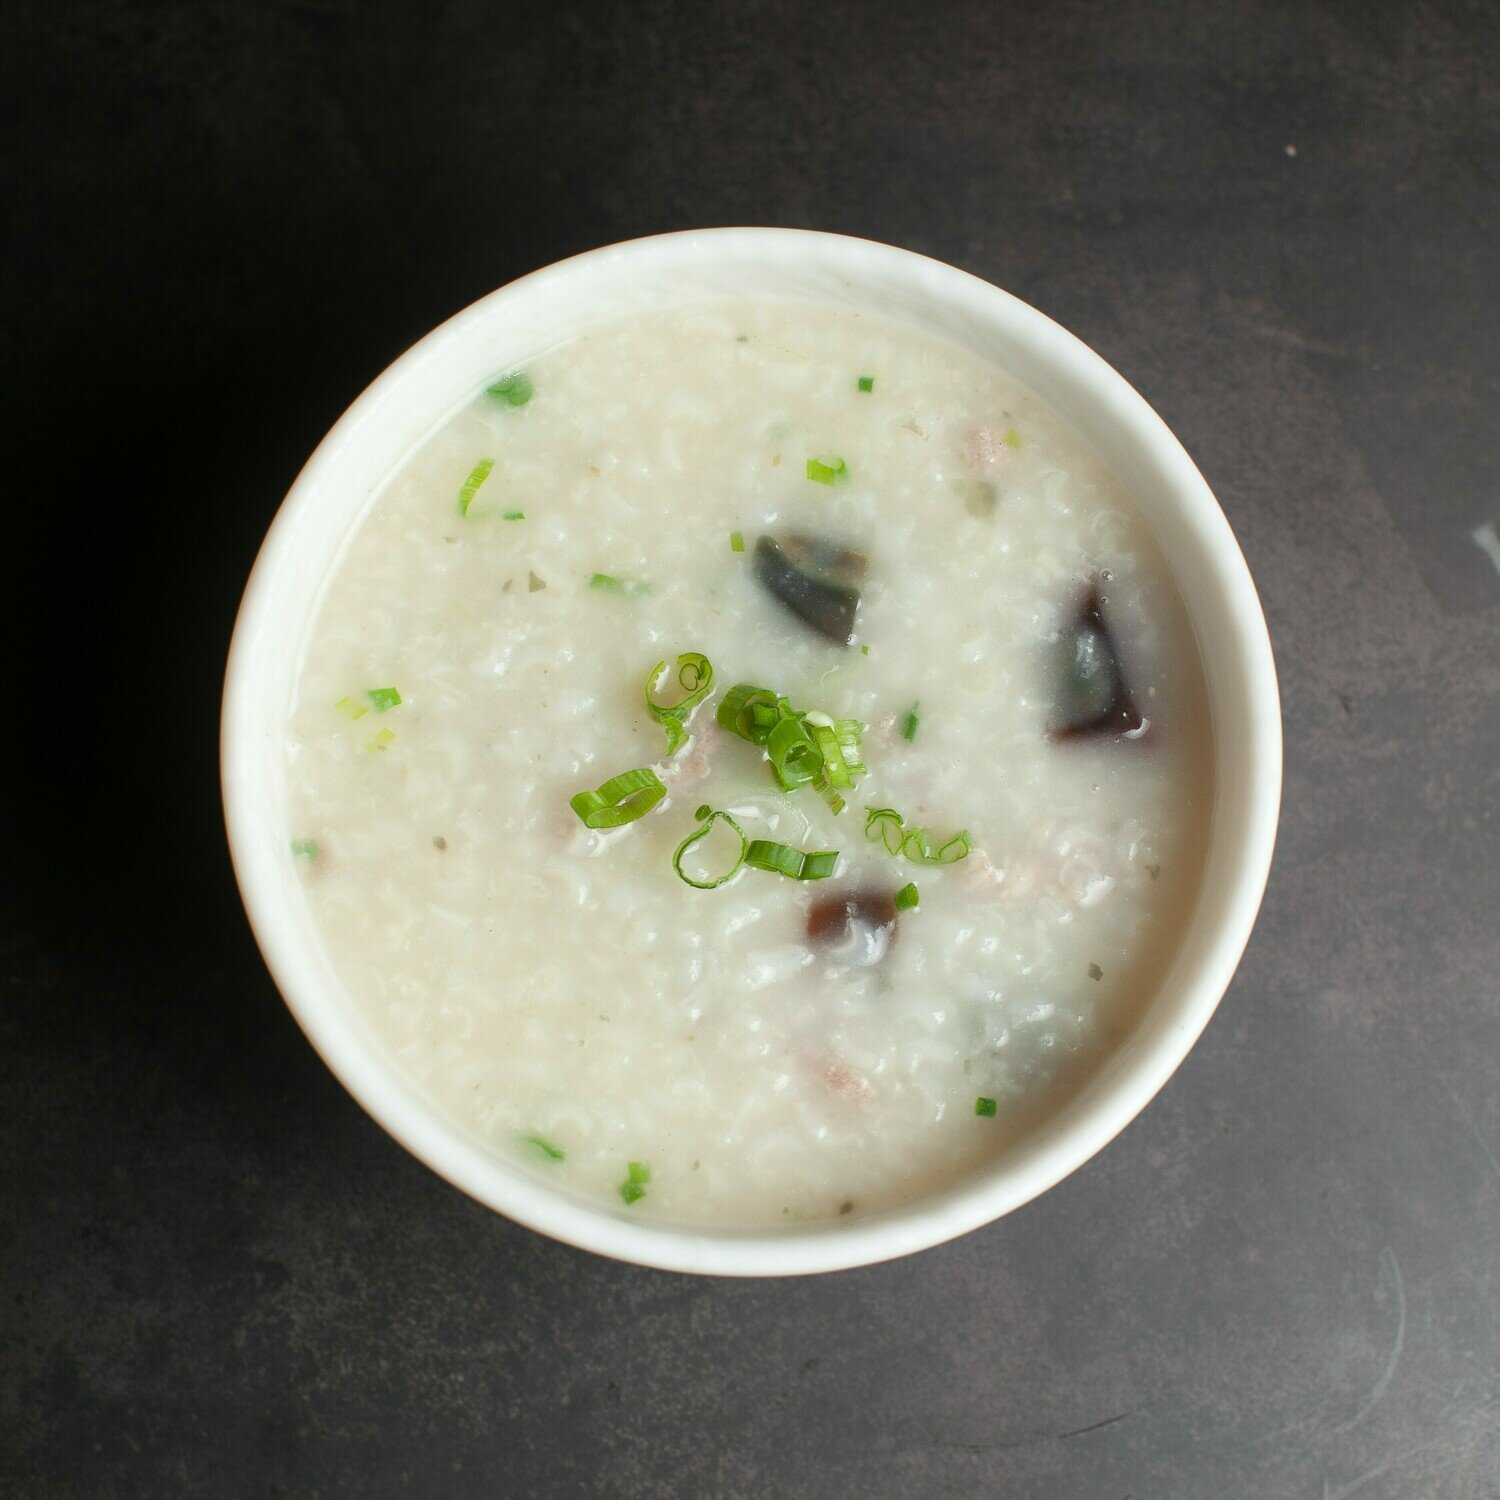 BSY【包十一】皮蛋瘦肉粥 Porridge with Preserved Egg and Lean Meat(周二休息)